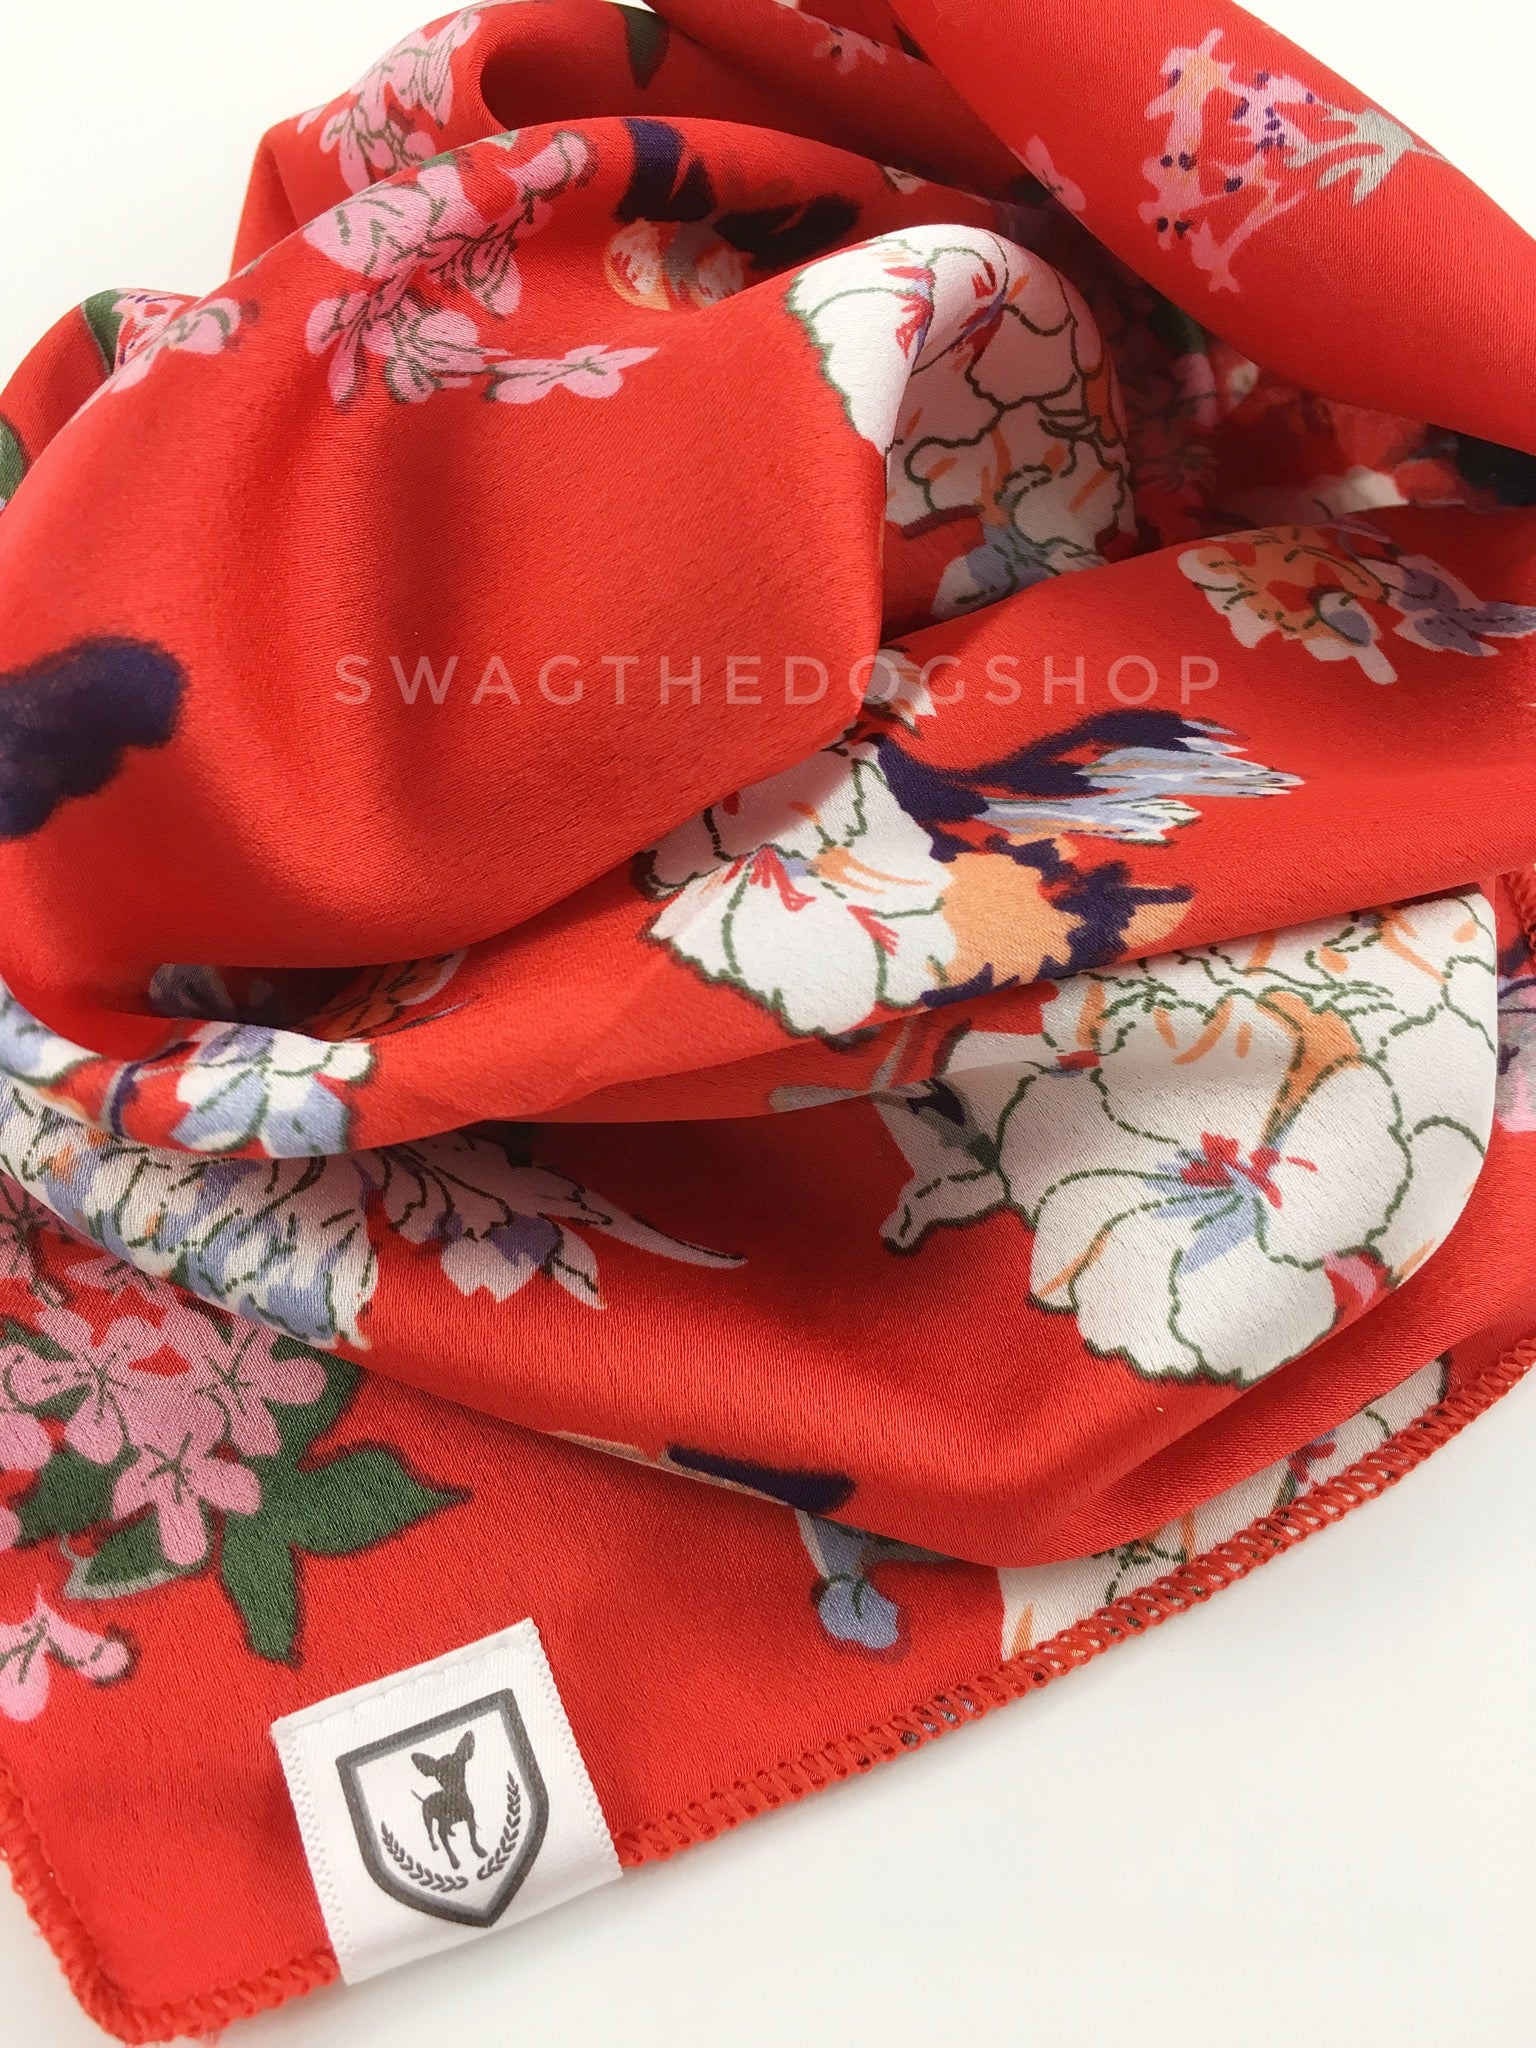 Red Wild Flowers Swagdana Scarf - Close-up View Of Product. Dog Bandana. Dog Scarf.